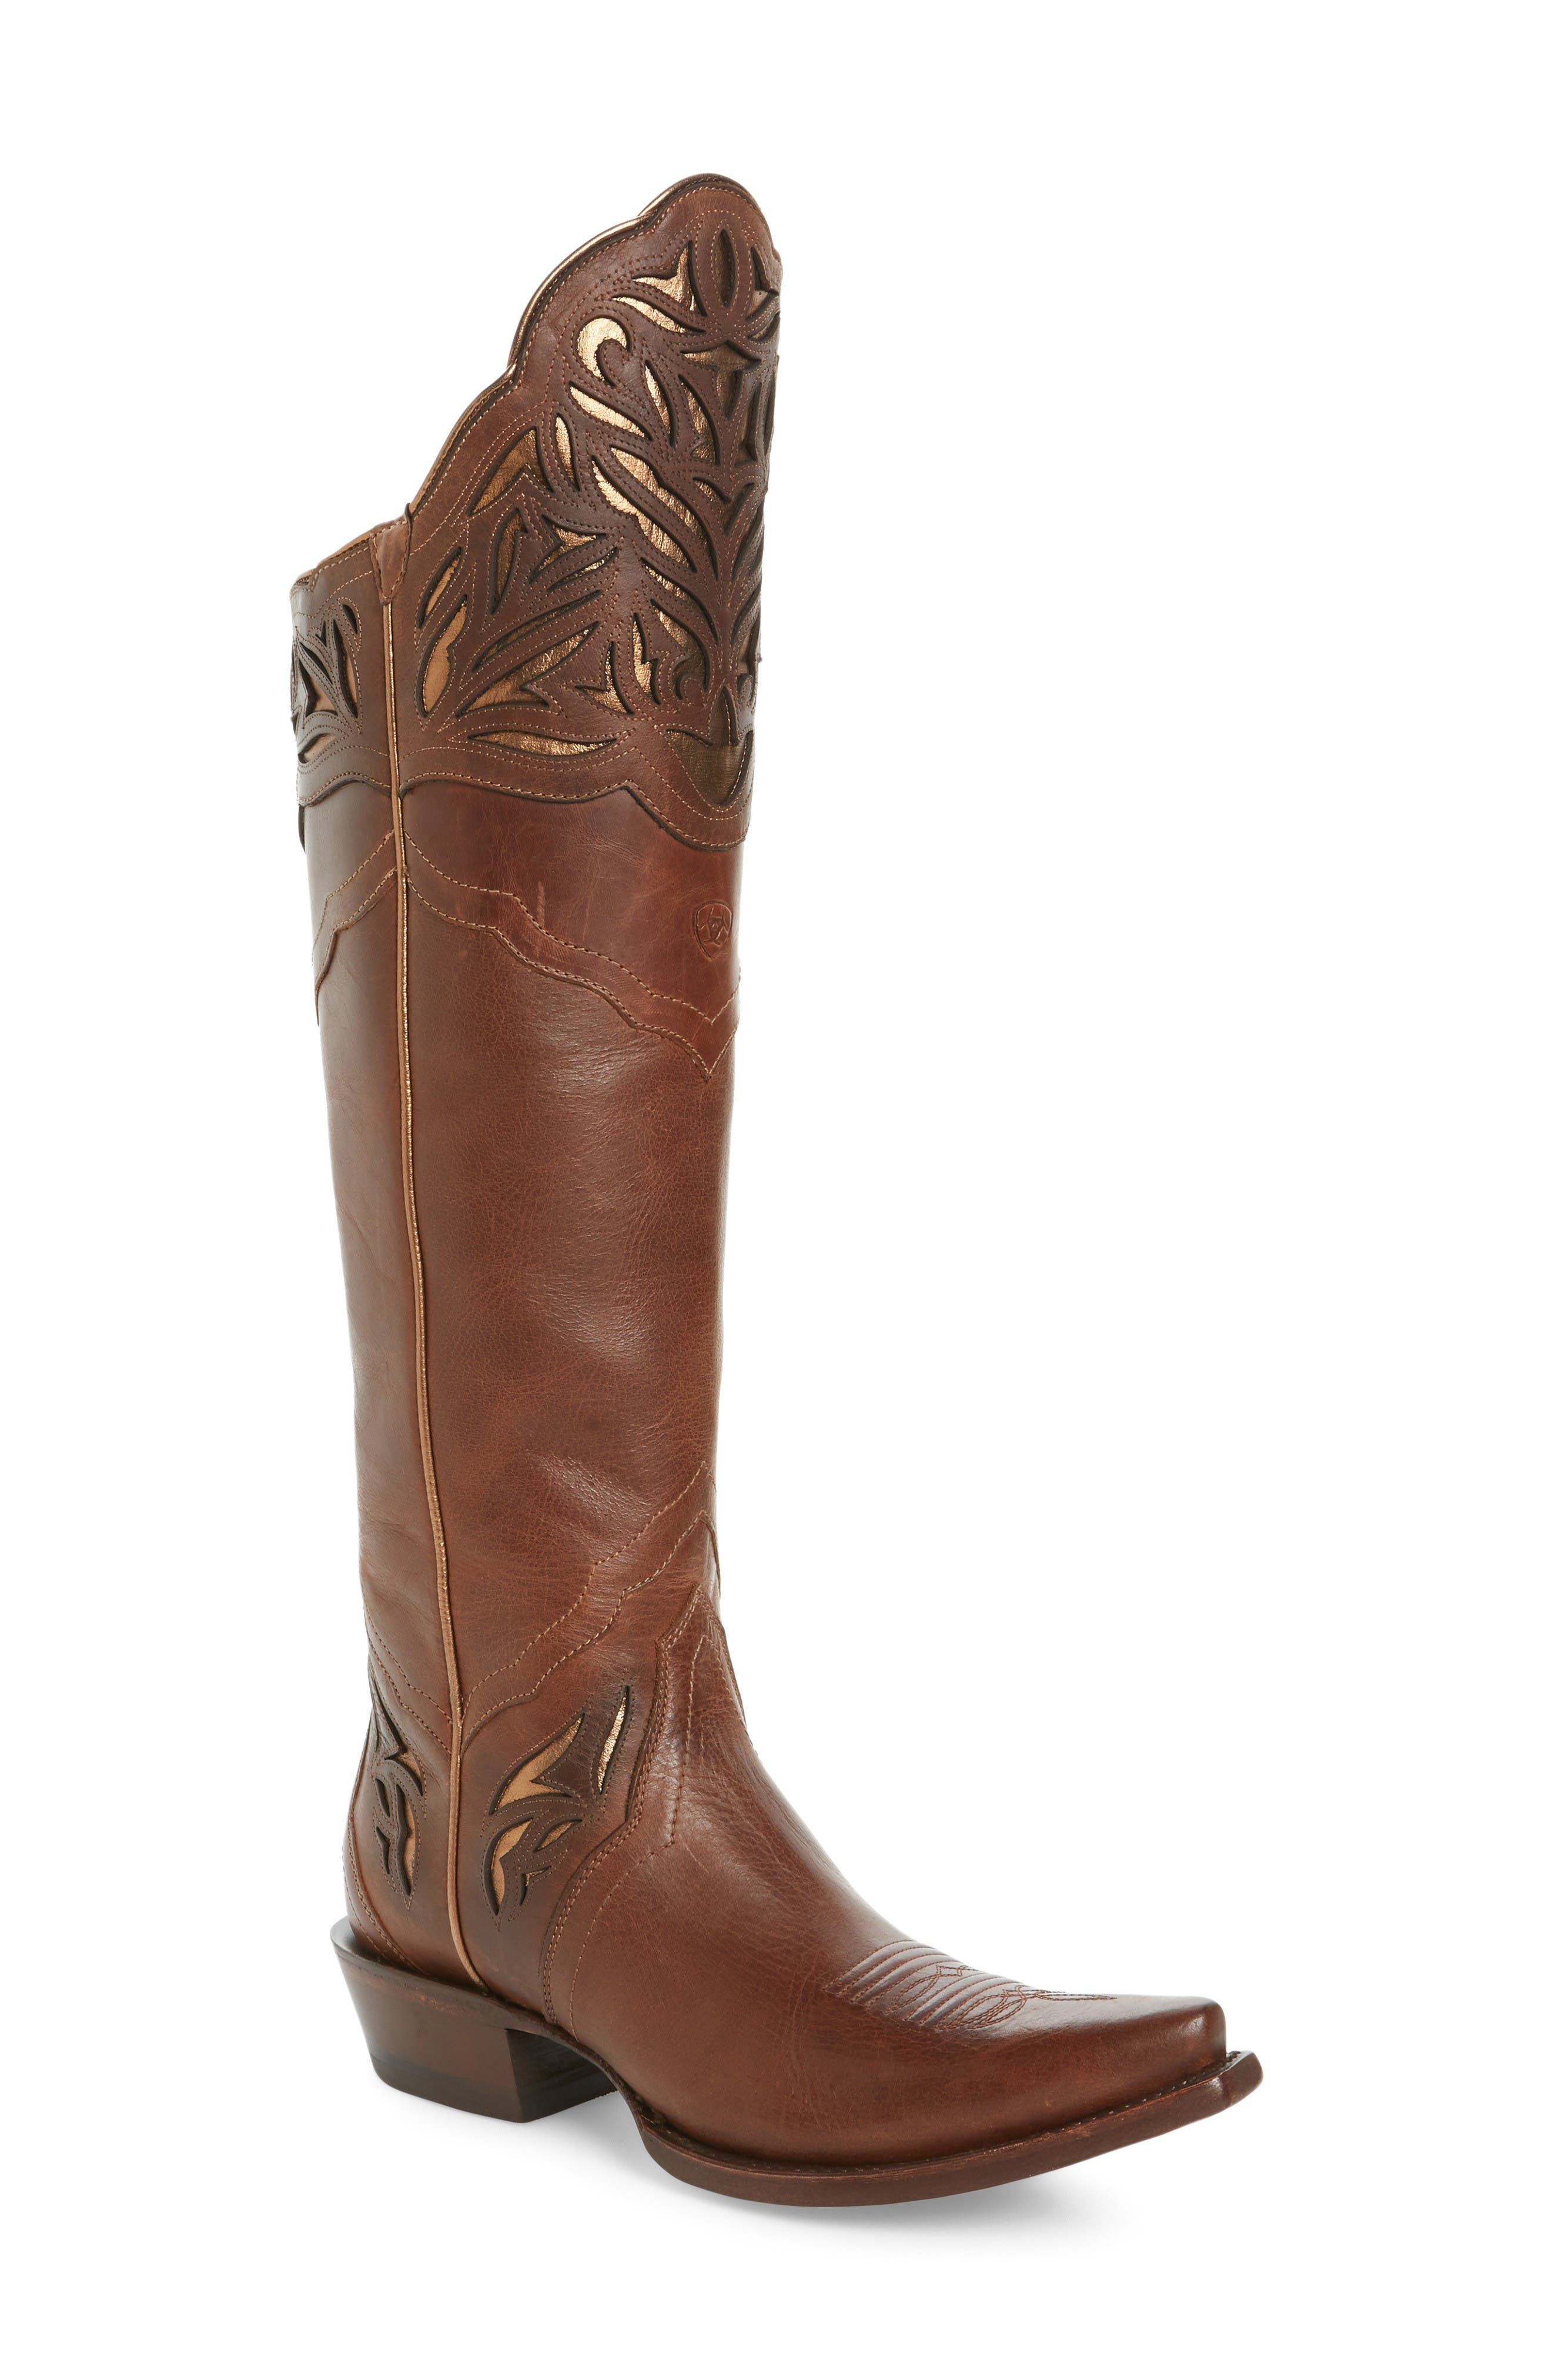 Main Image - Ariat Chaparral Over the Knee Western Boot (Women)